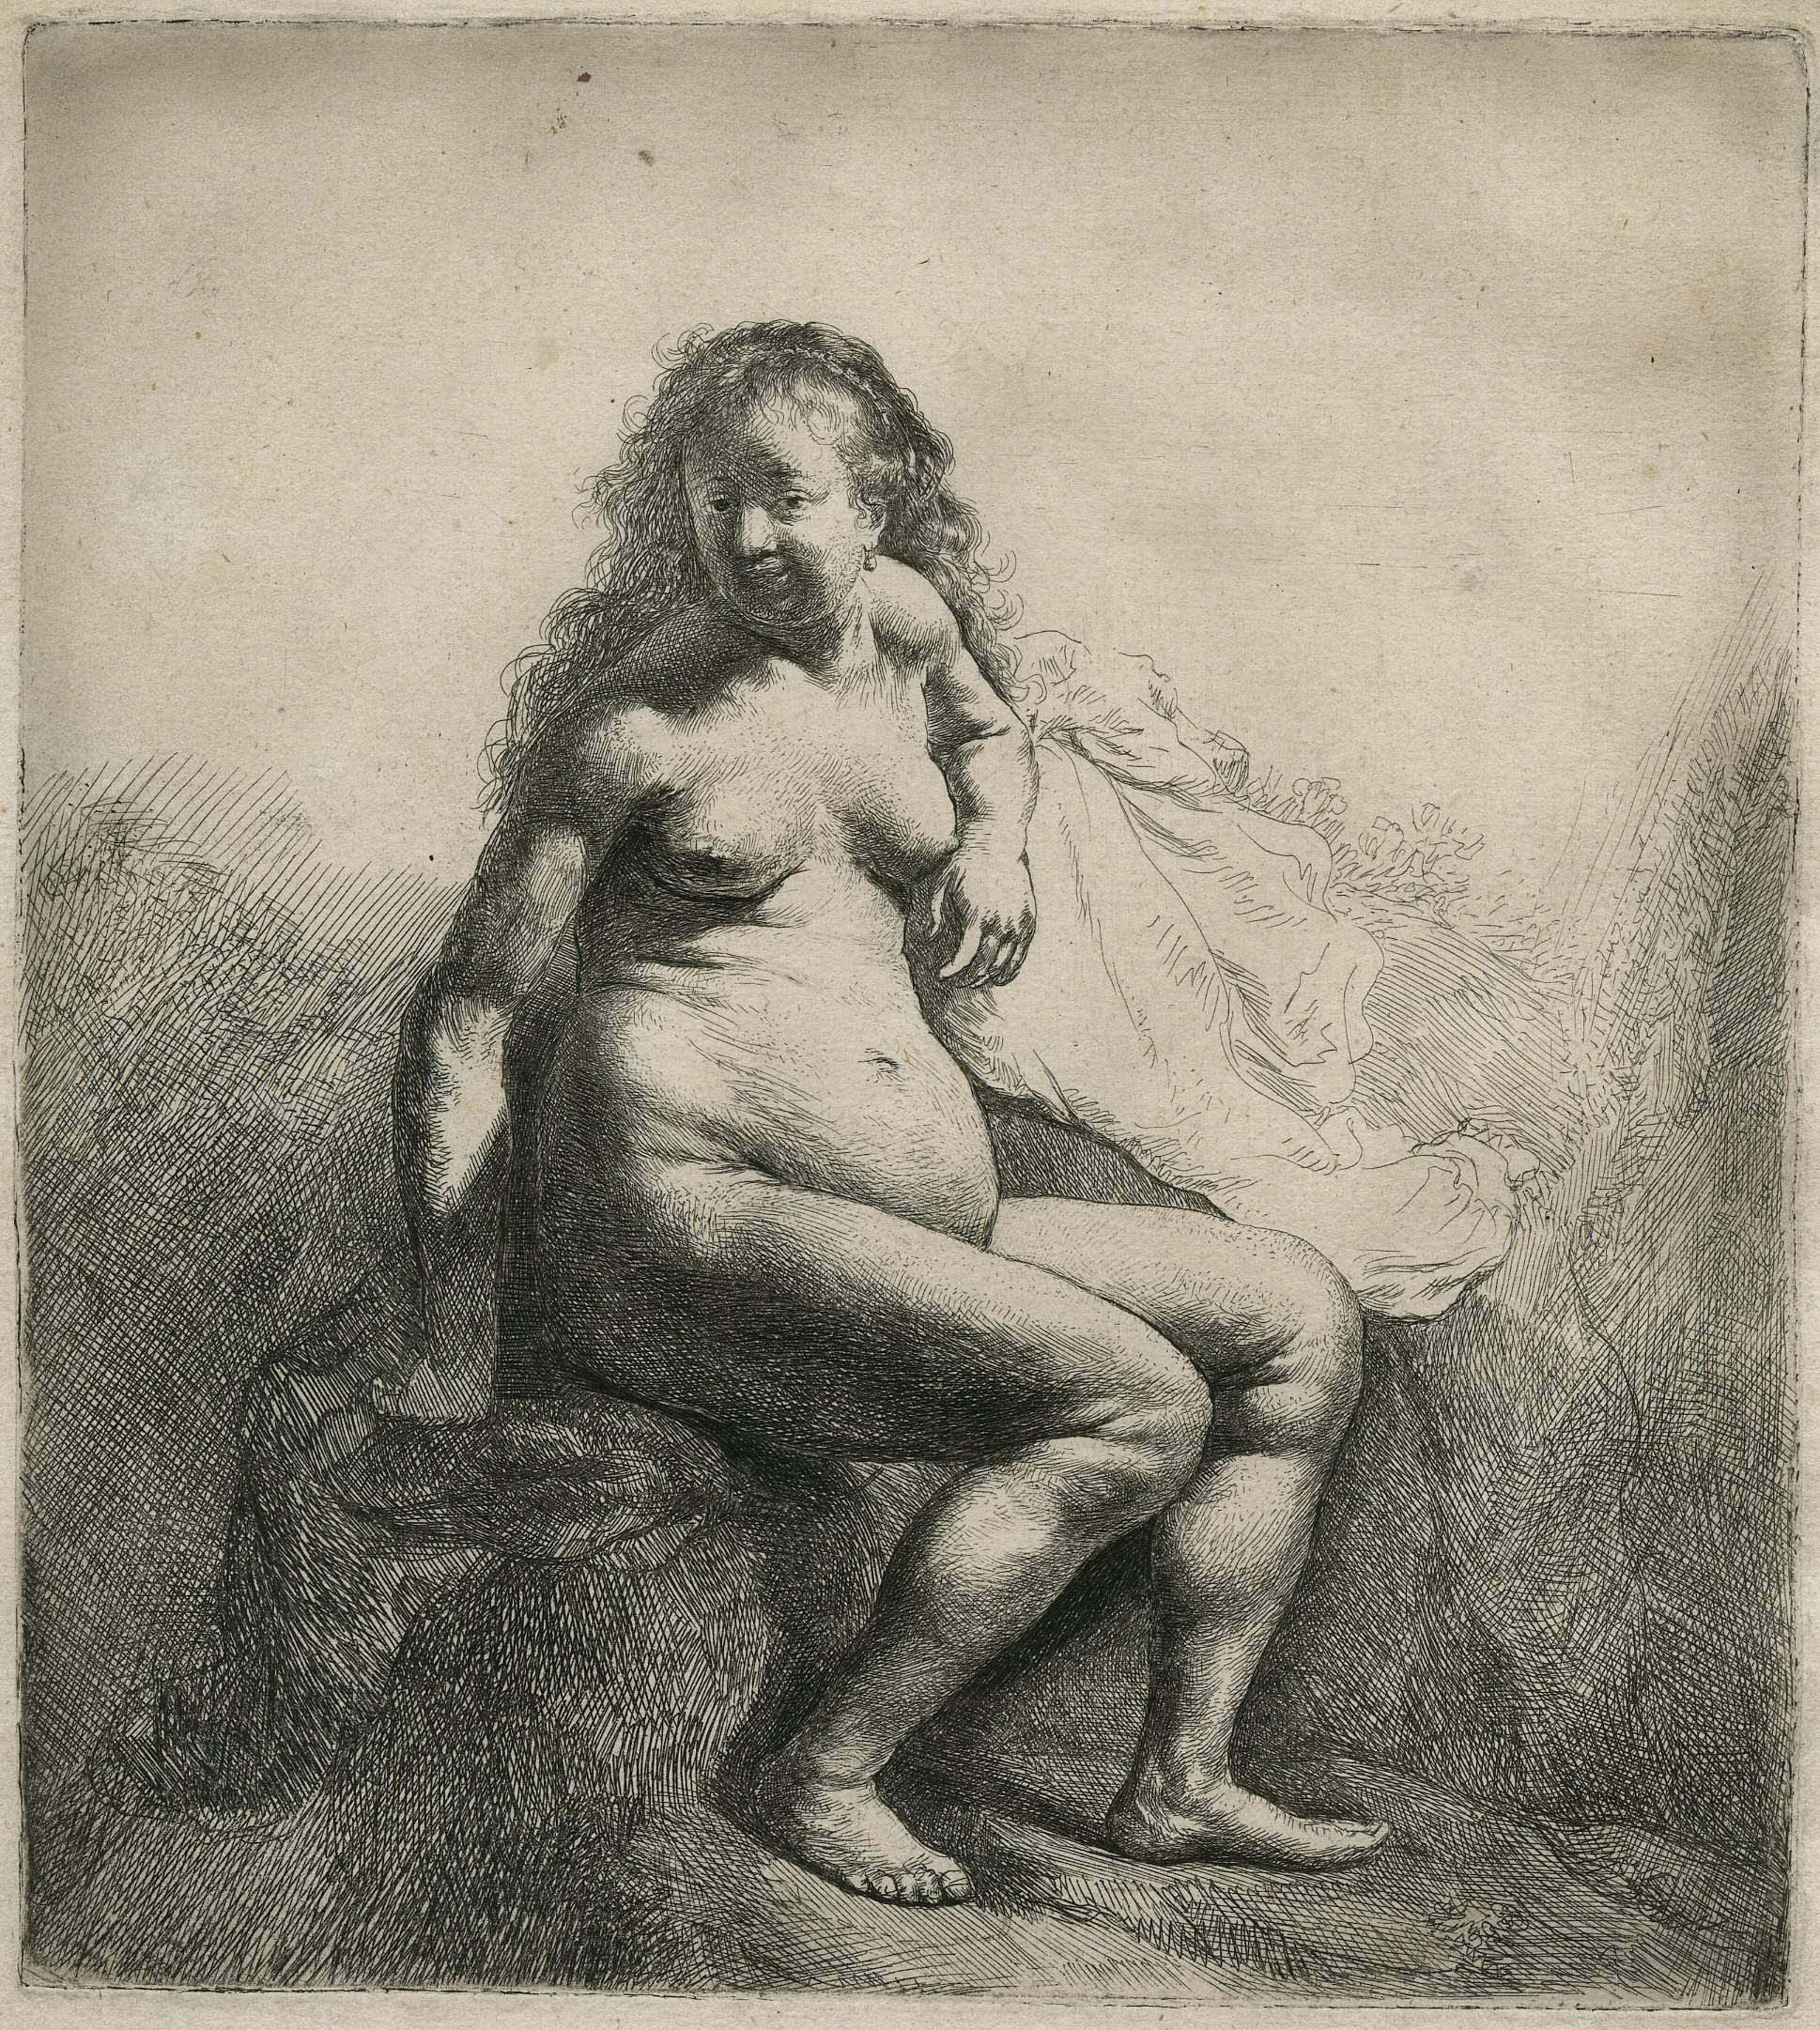 an etching by Rembrandt of a naked woman seated